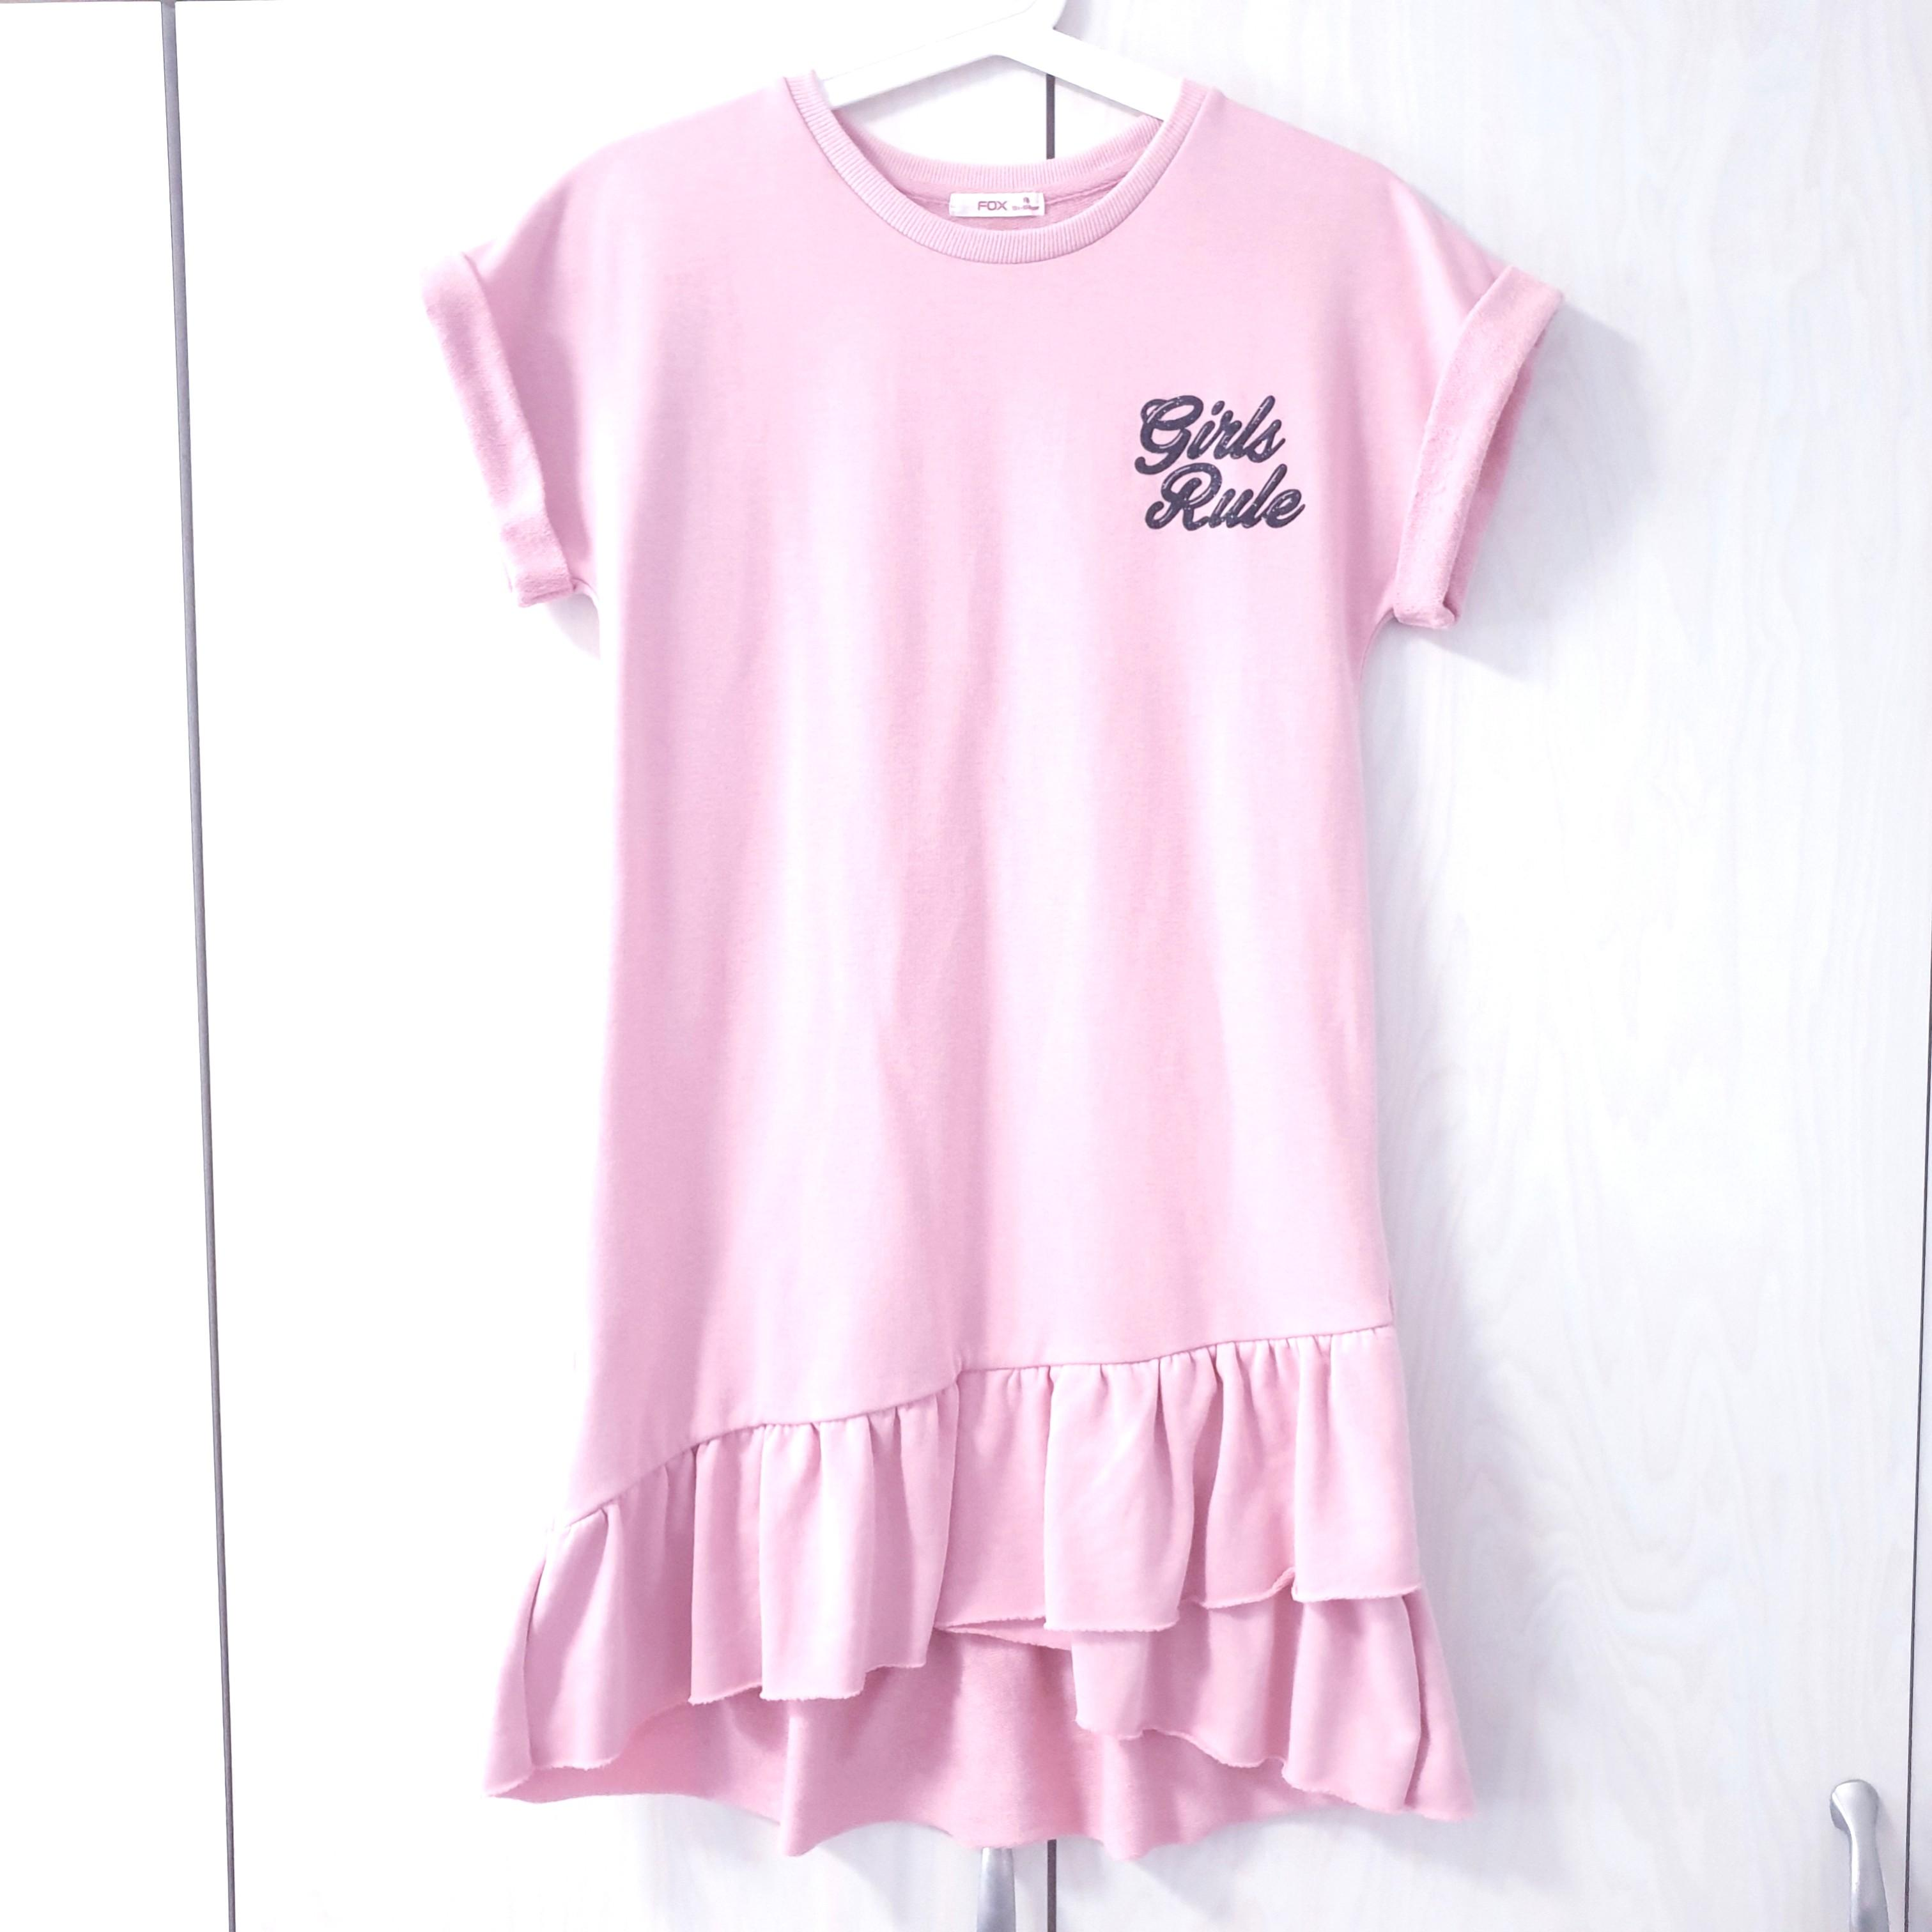 super specials genuine shoes promo codes FOX Pink Dress, Babies & Kids, Girls' Apparel, 8 to 12 Years on ...